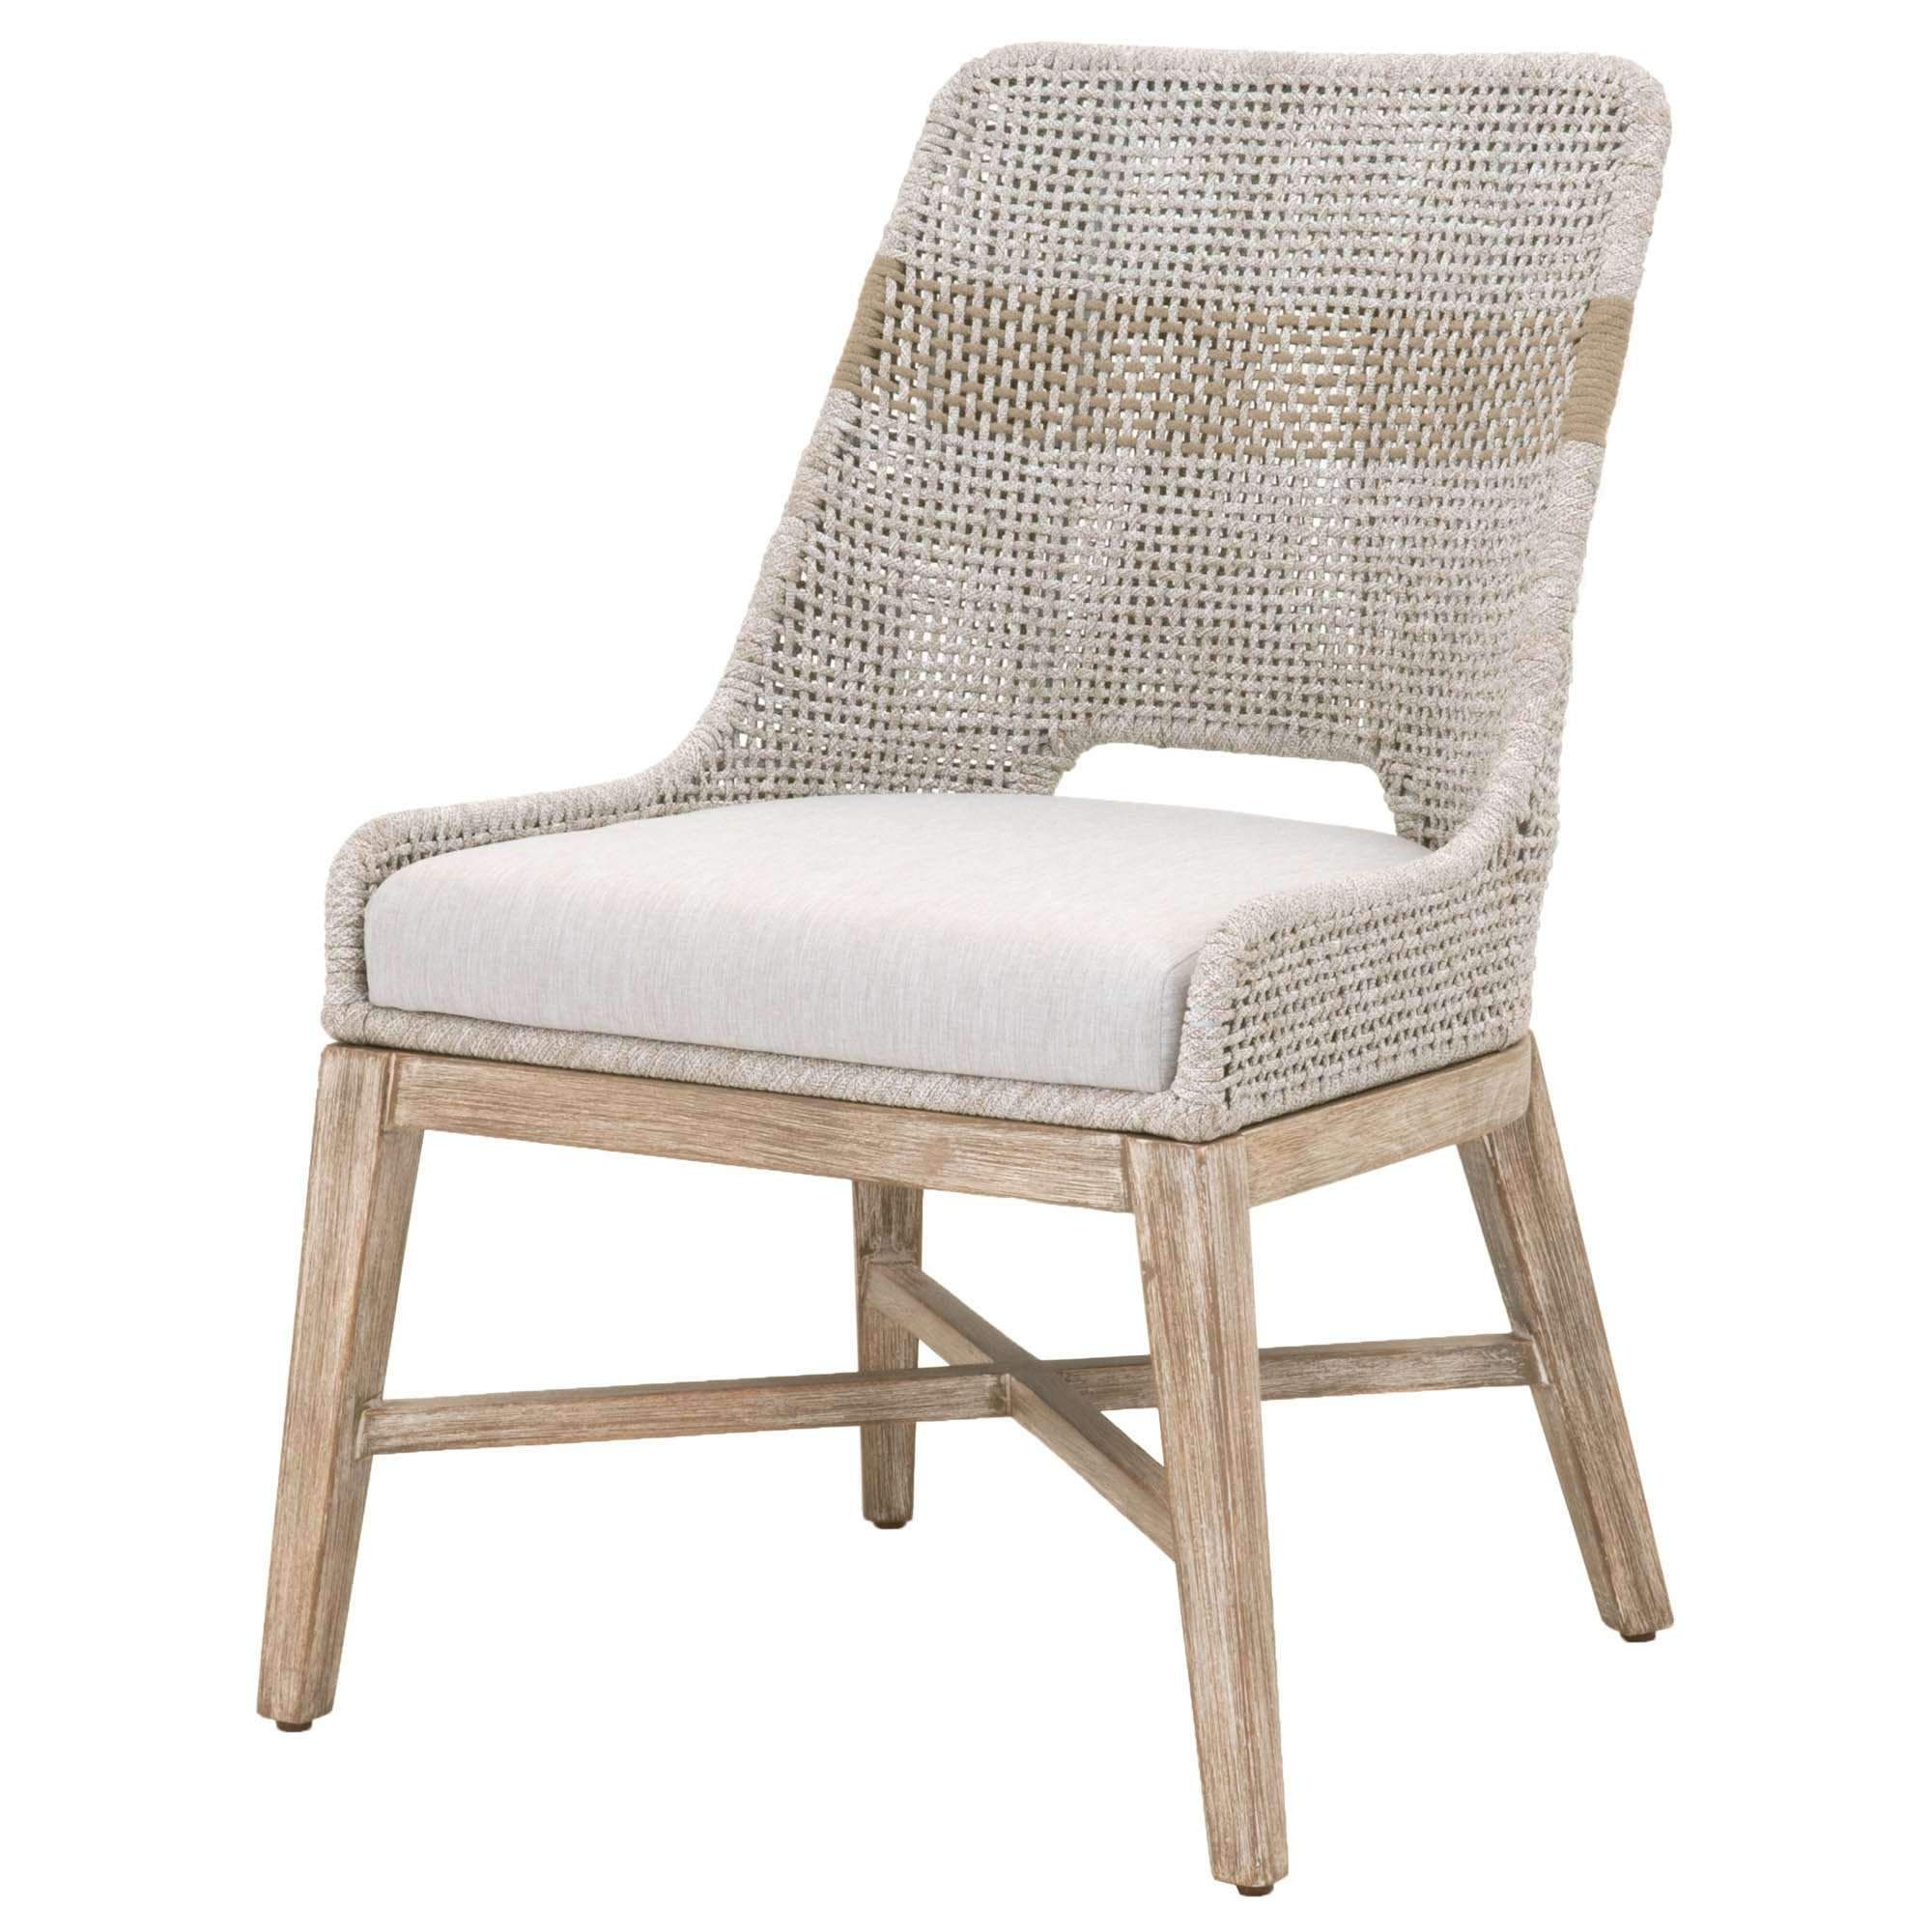 Tapestry Dining Chair Set Of 2 Taupe White Pumice Woven